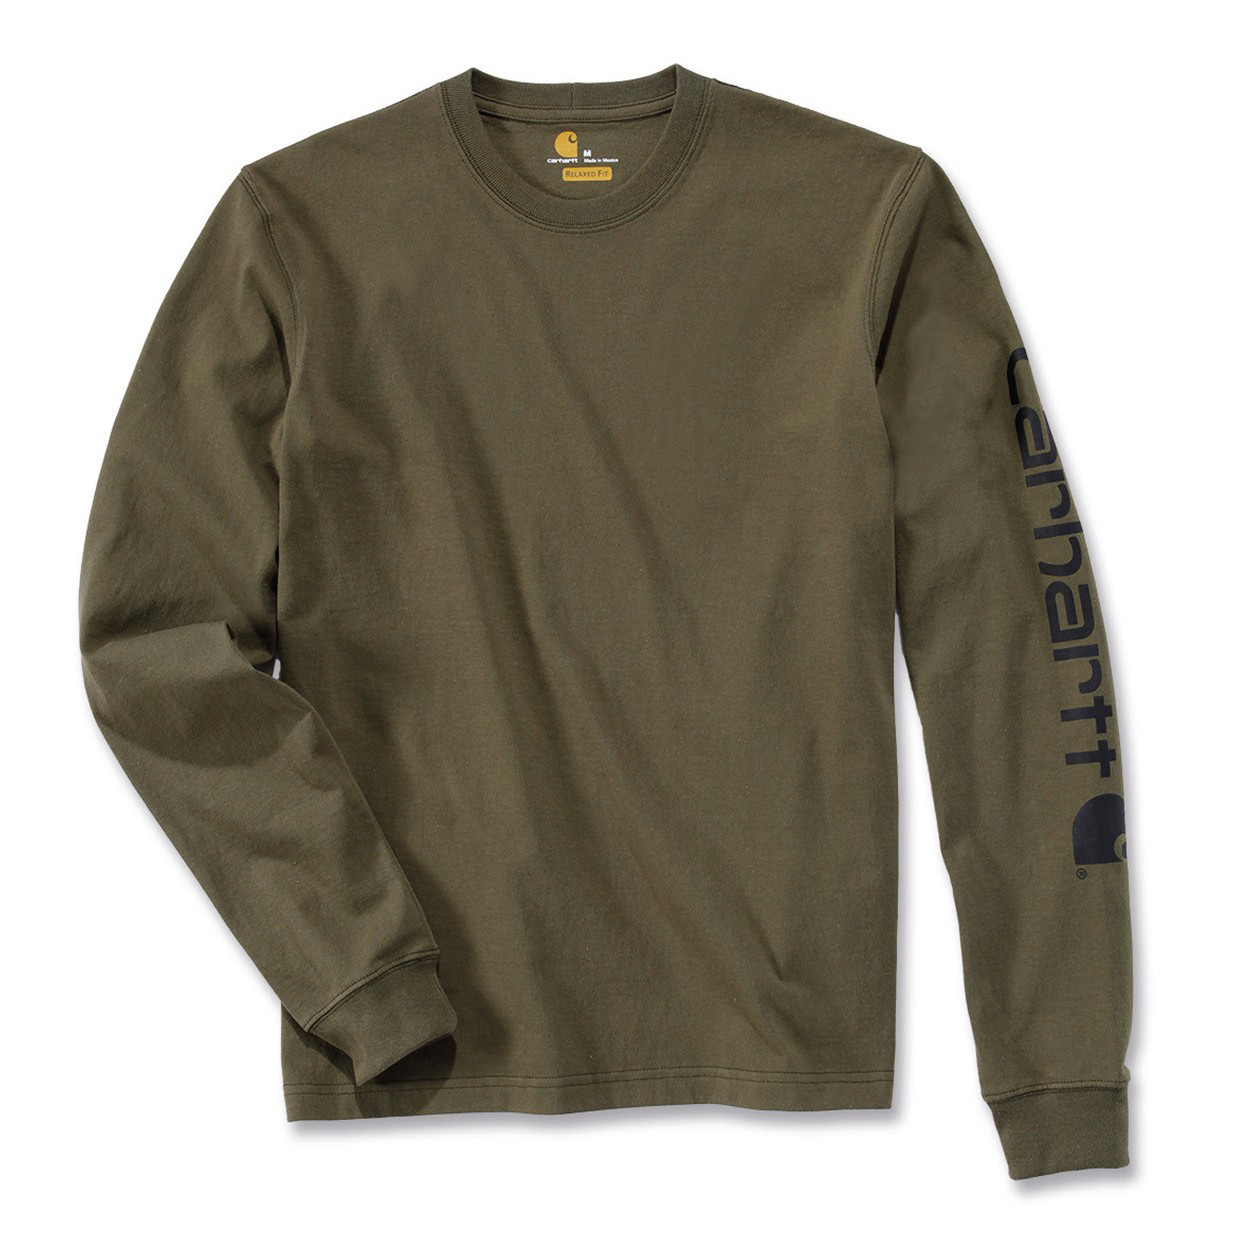 Футболка с длинным рукавом Carhartt Sleeve Logo T-Shirt L/S - EK231 (Army Green, XL)